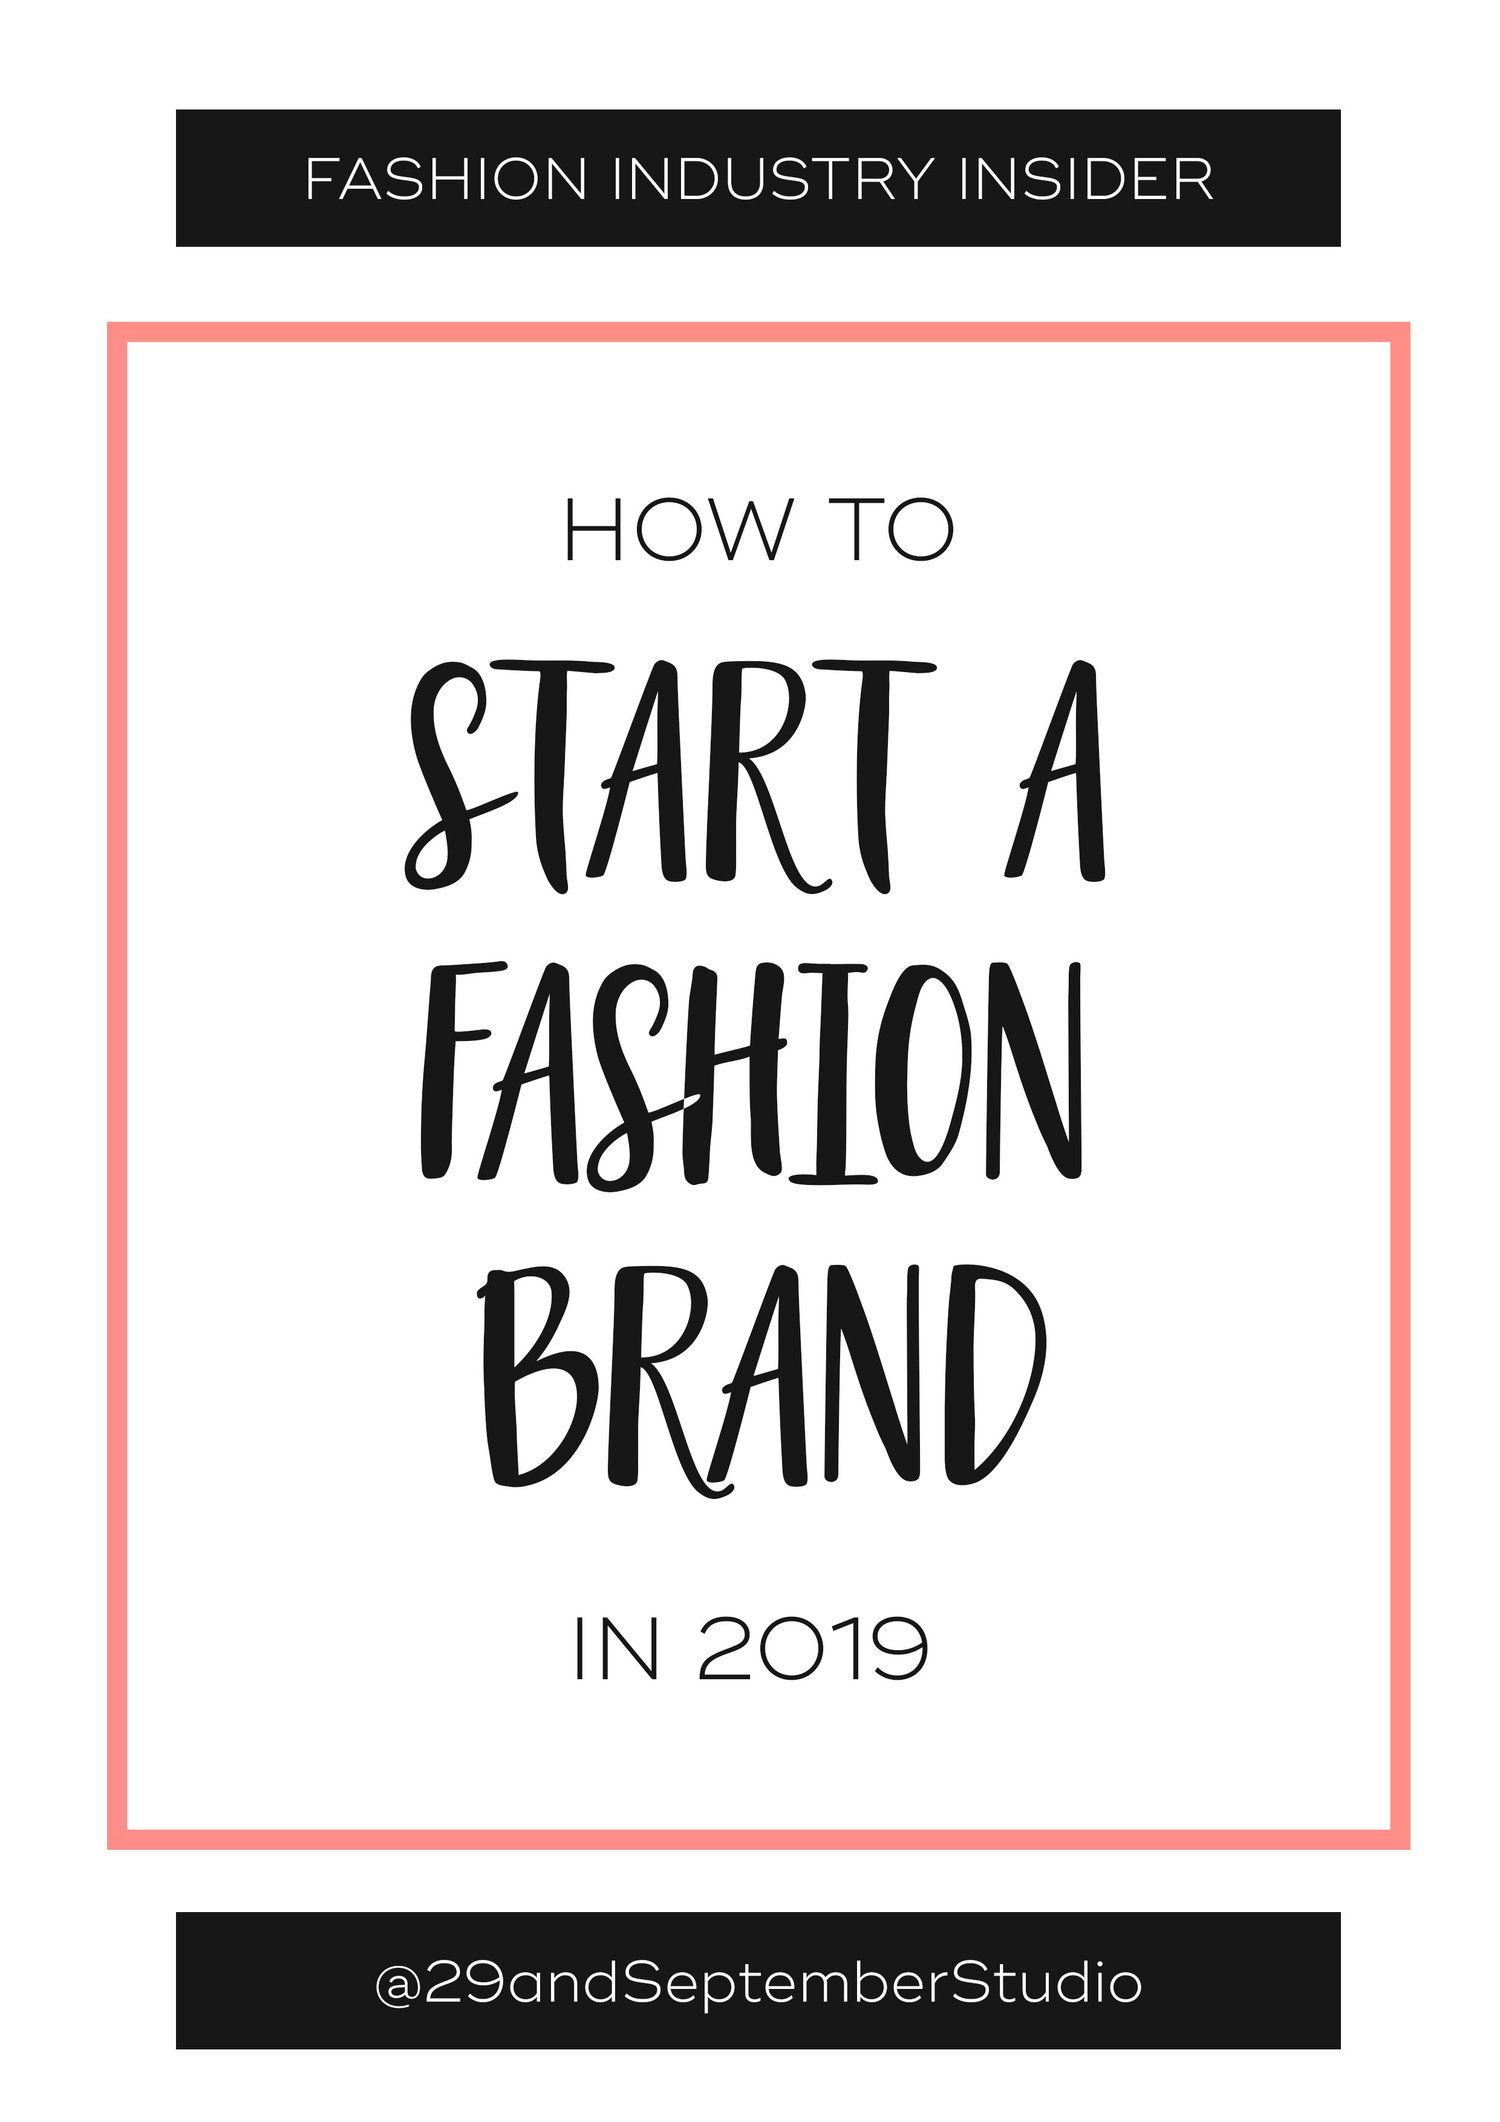 Photo of How to start a fashion business in 2019